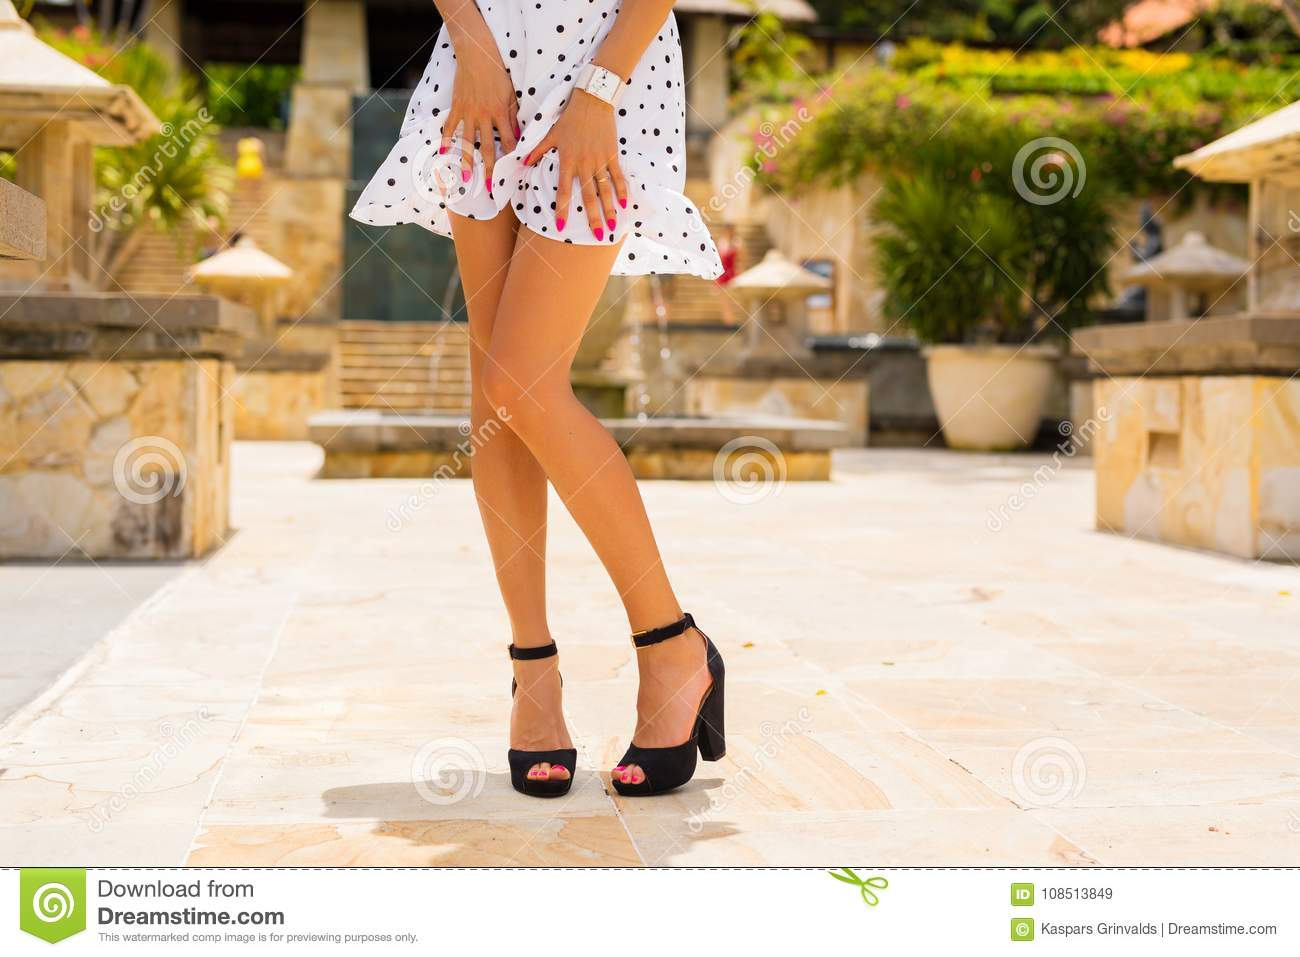 Woman With Slim Legs Posing In White Summer Dress And Black High Heels